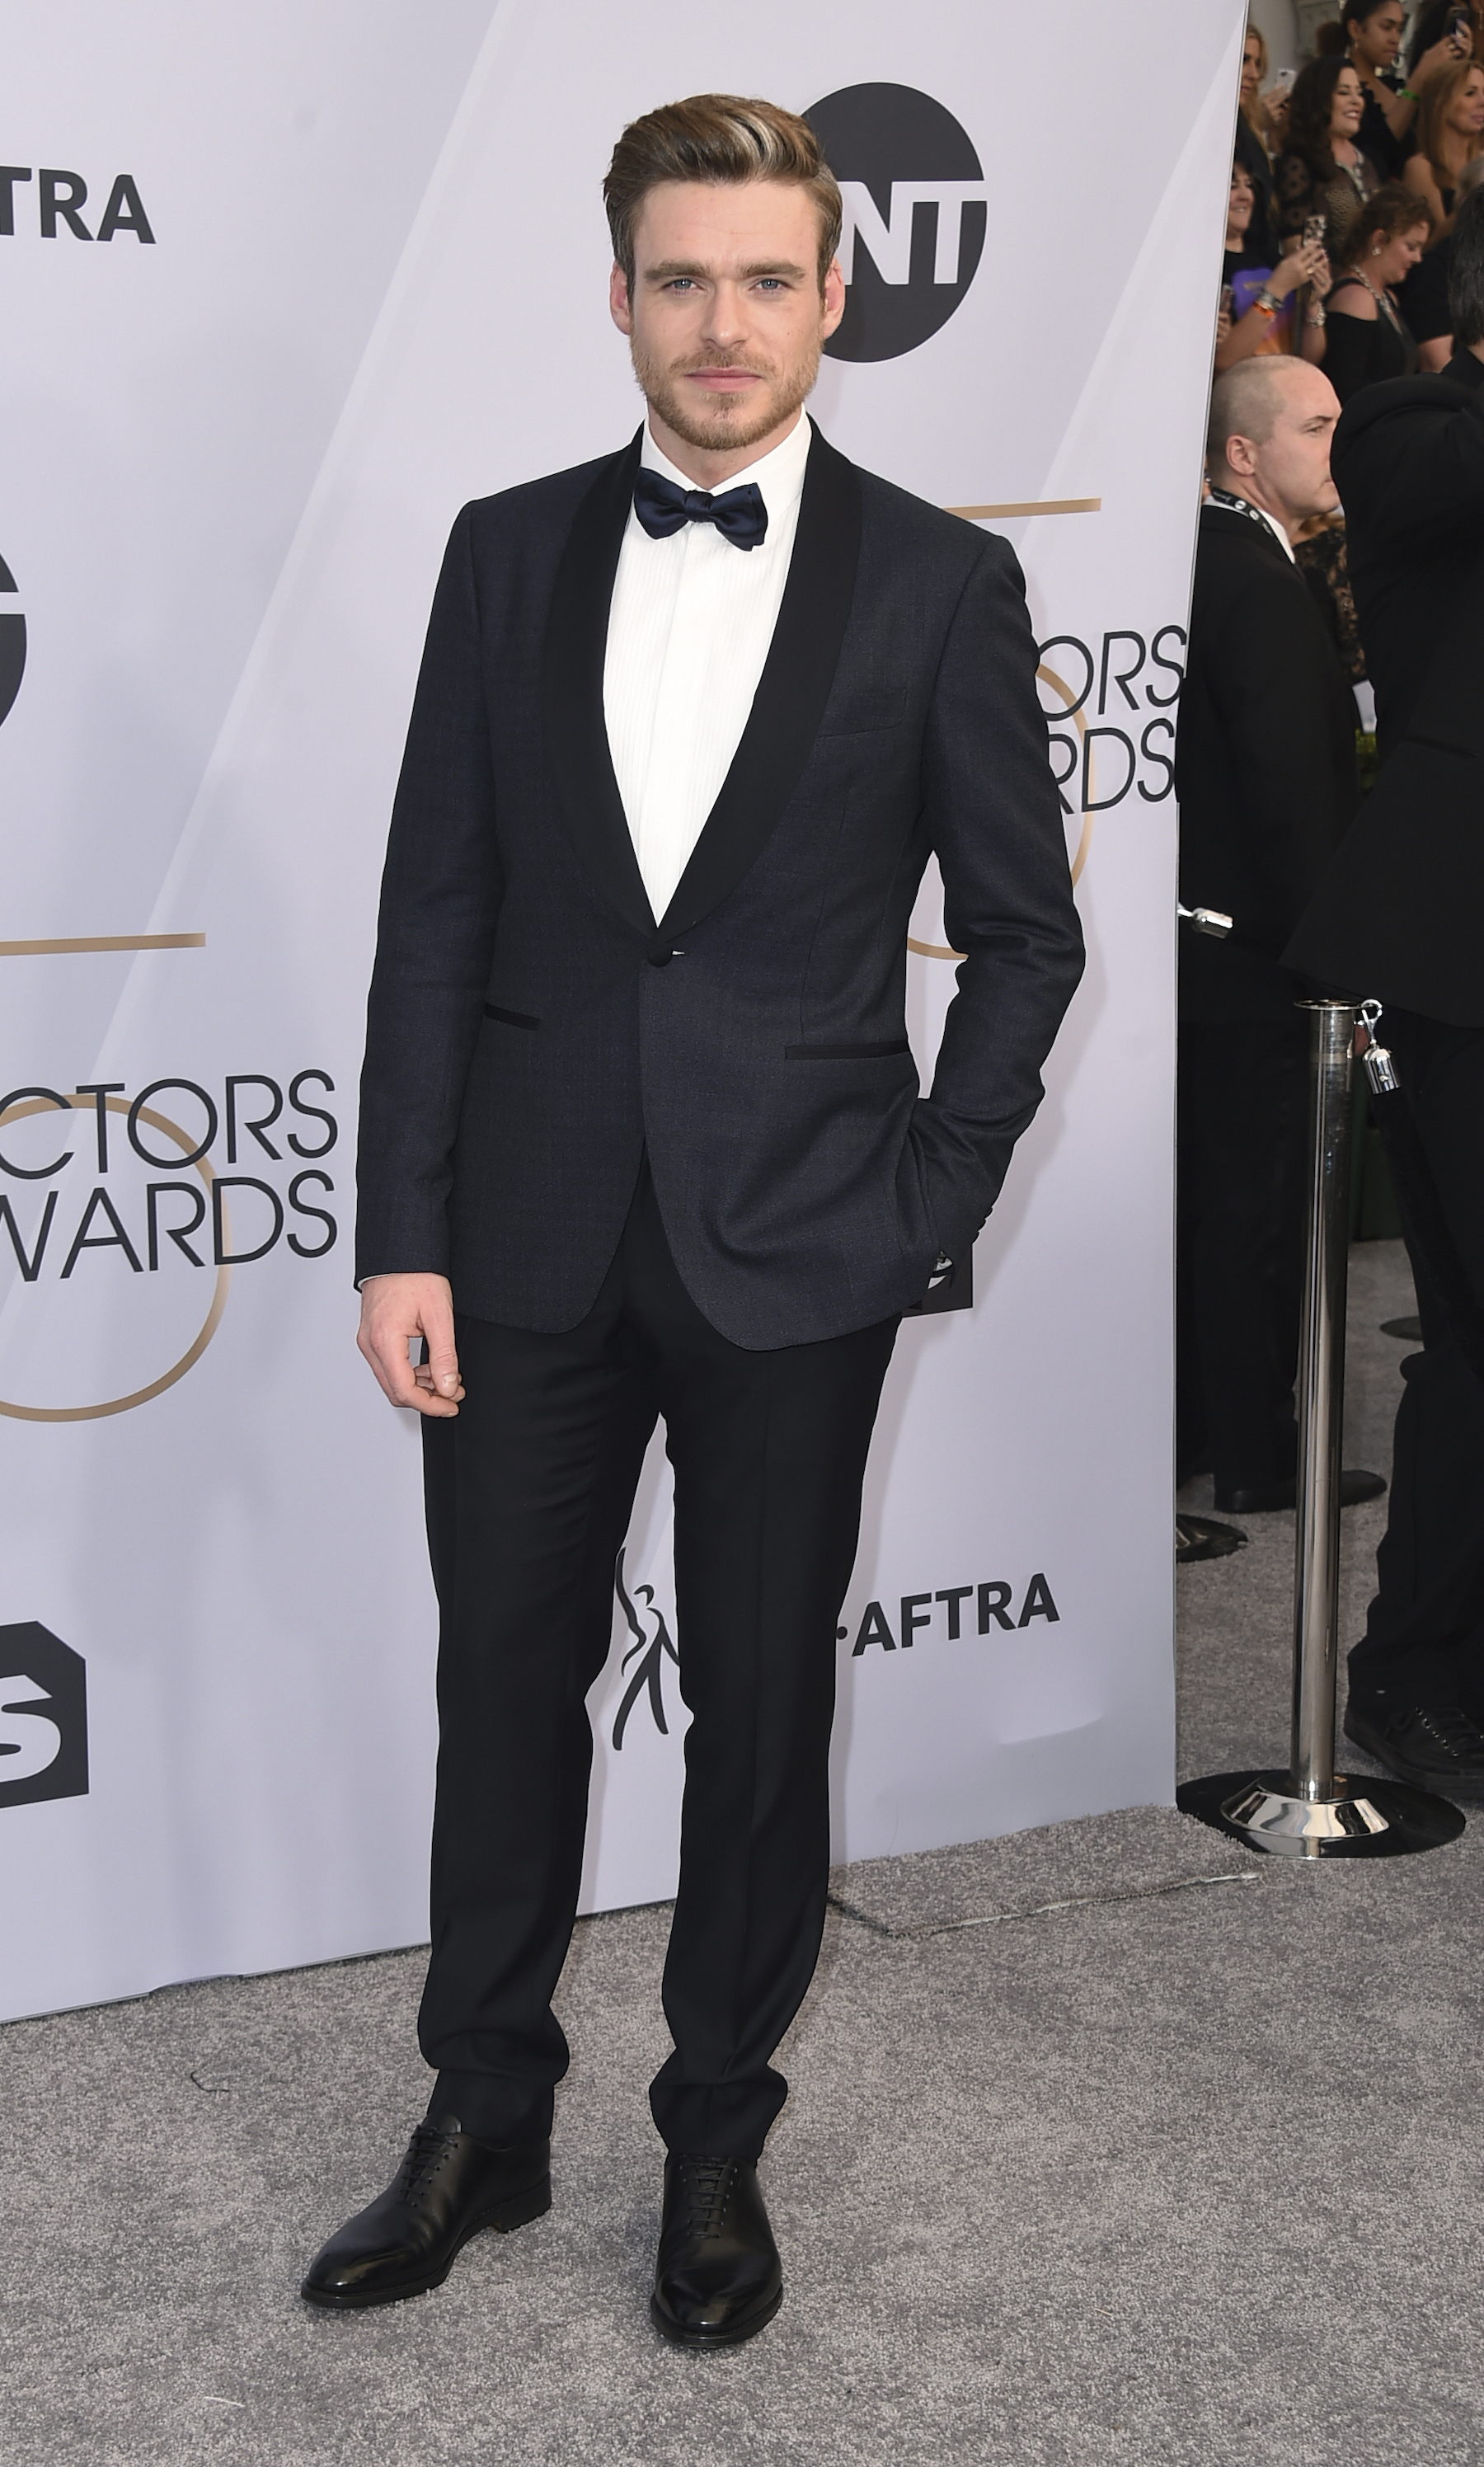 <div class='meta'><div class='origin-logo' data-origin='AP'></div><span class='caption-text' data-credit='Jordan Strauss/Invision/AP'>Richard Madden arrives at the 25th annual Screen Actors Guild Awards at the Shrine Auditorium & Expo Hall on Sunday, Jan. 27, 2019, in Los Angeles.</span></div>